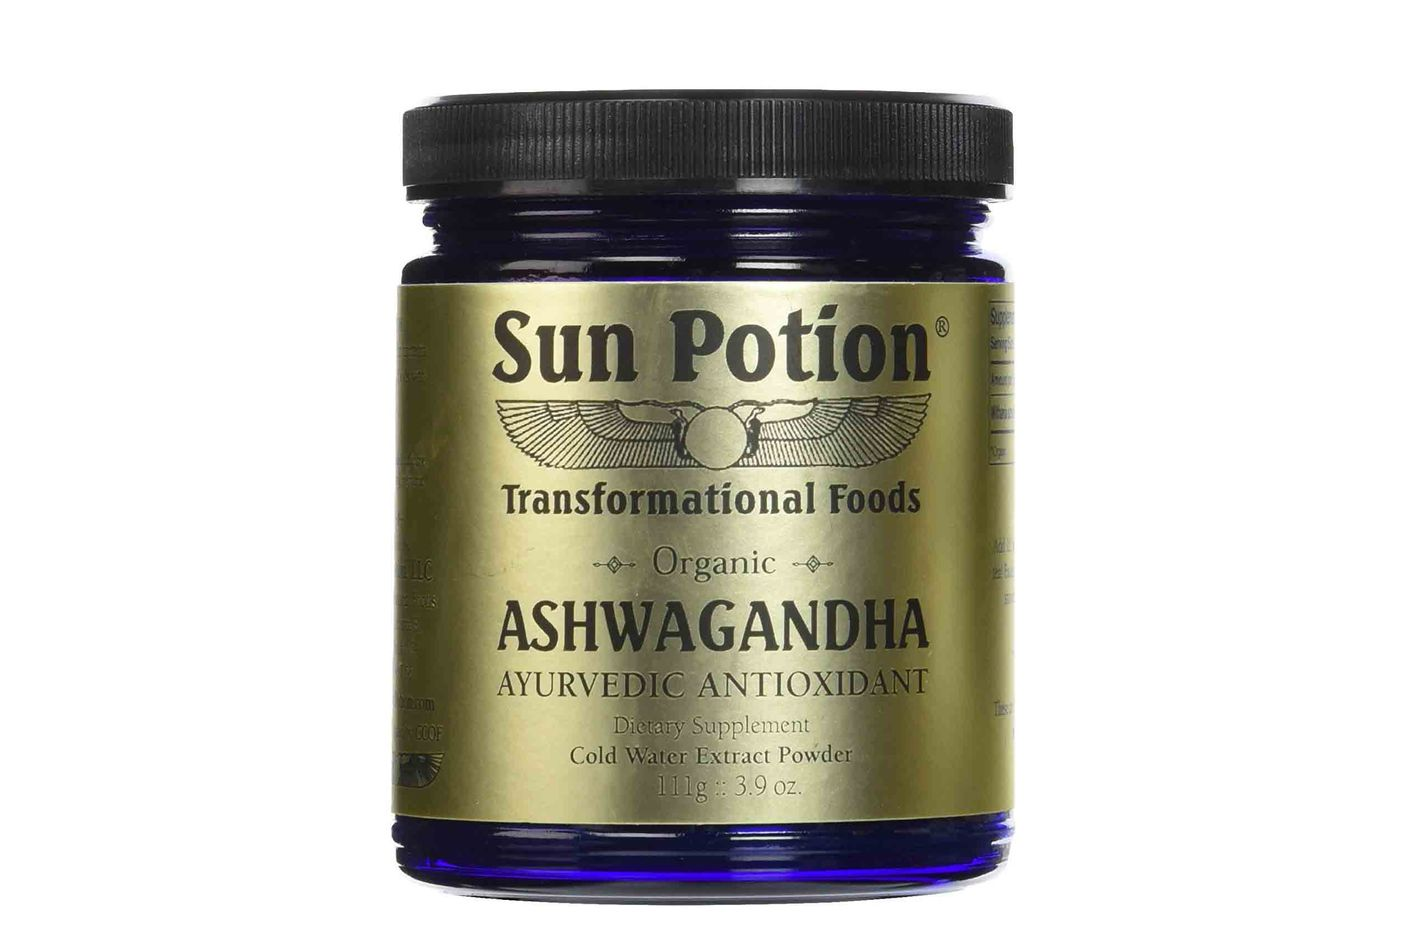 Sun Potion Ashwagandha Antioxidant Powder